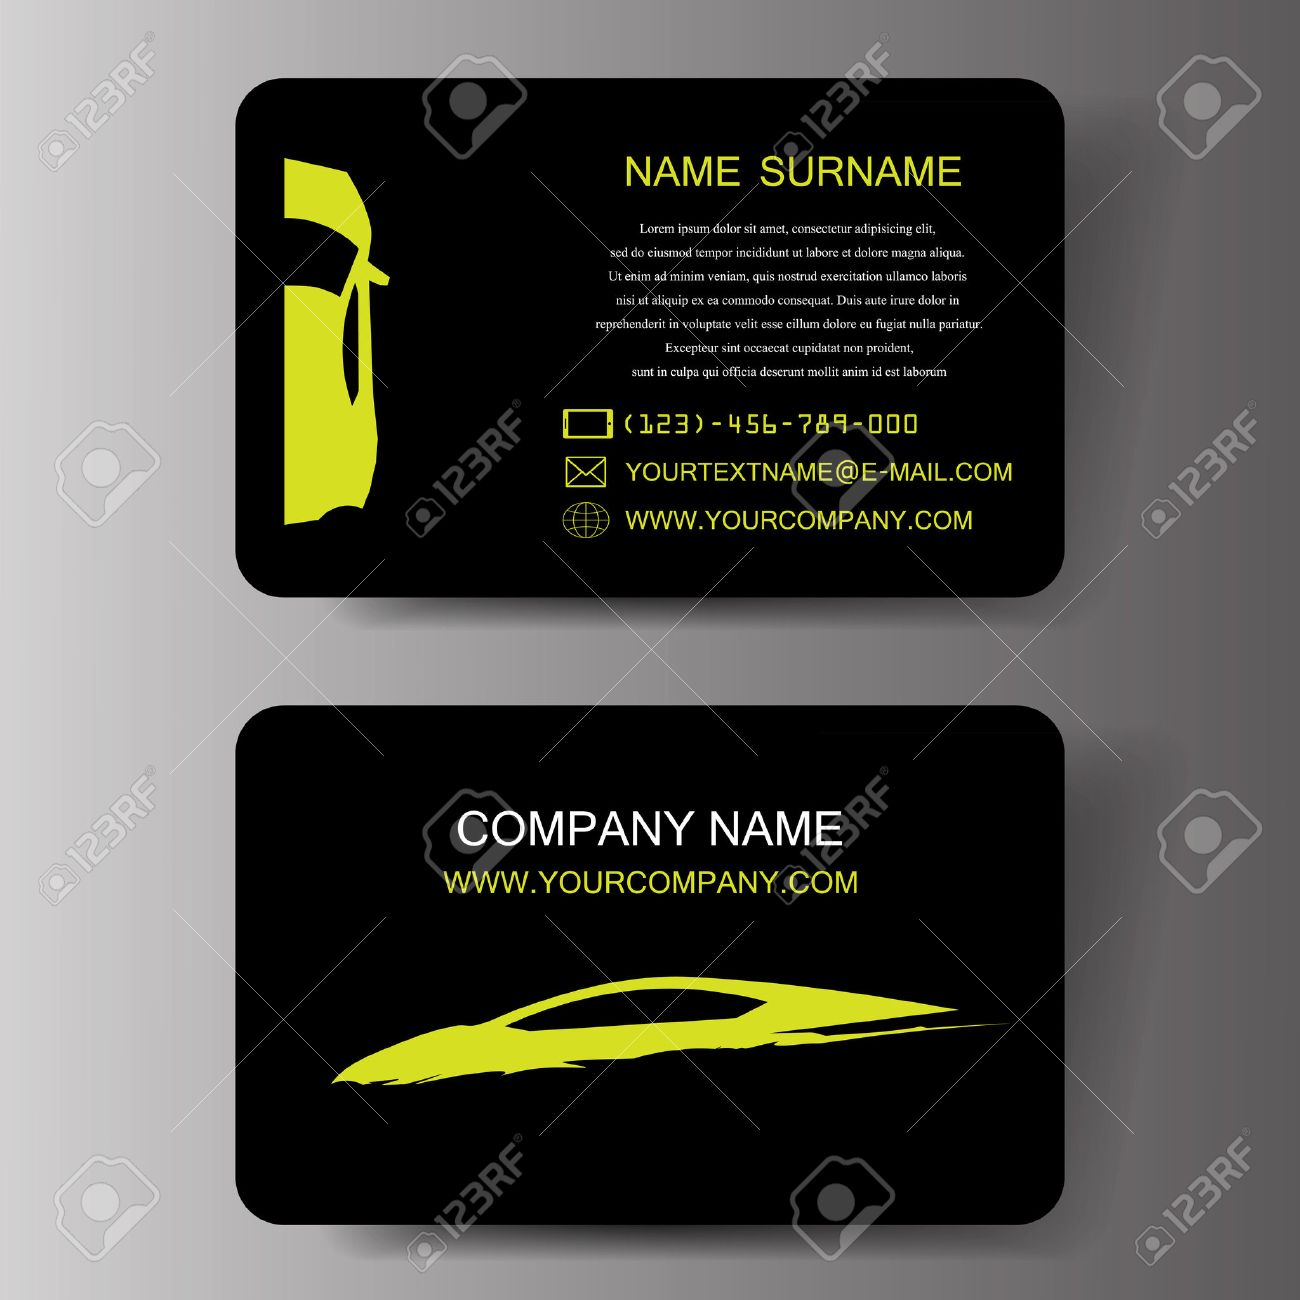 Business cards hollywood fl images free business cards automotive business cards business card loan officer resume car business cards illustration royalty free cliparts vectors magicingreecefo Images